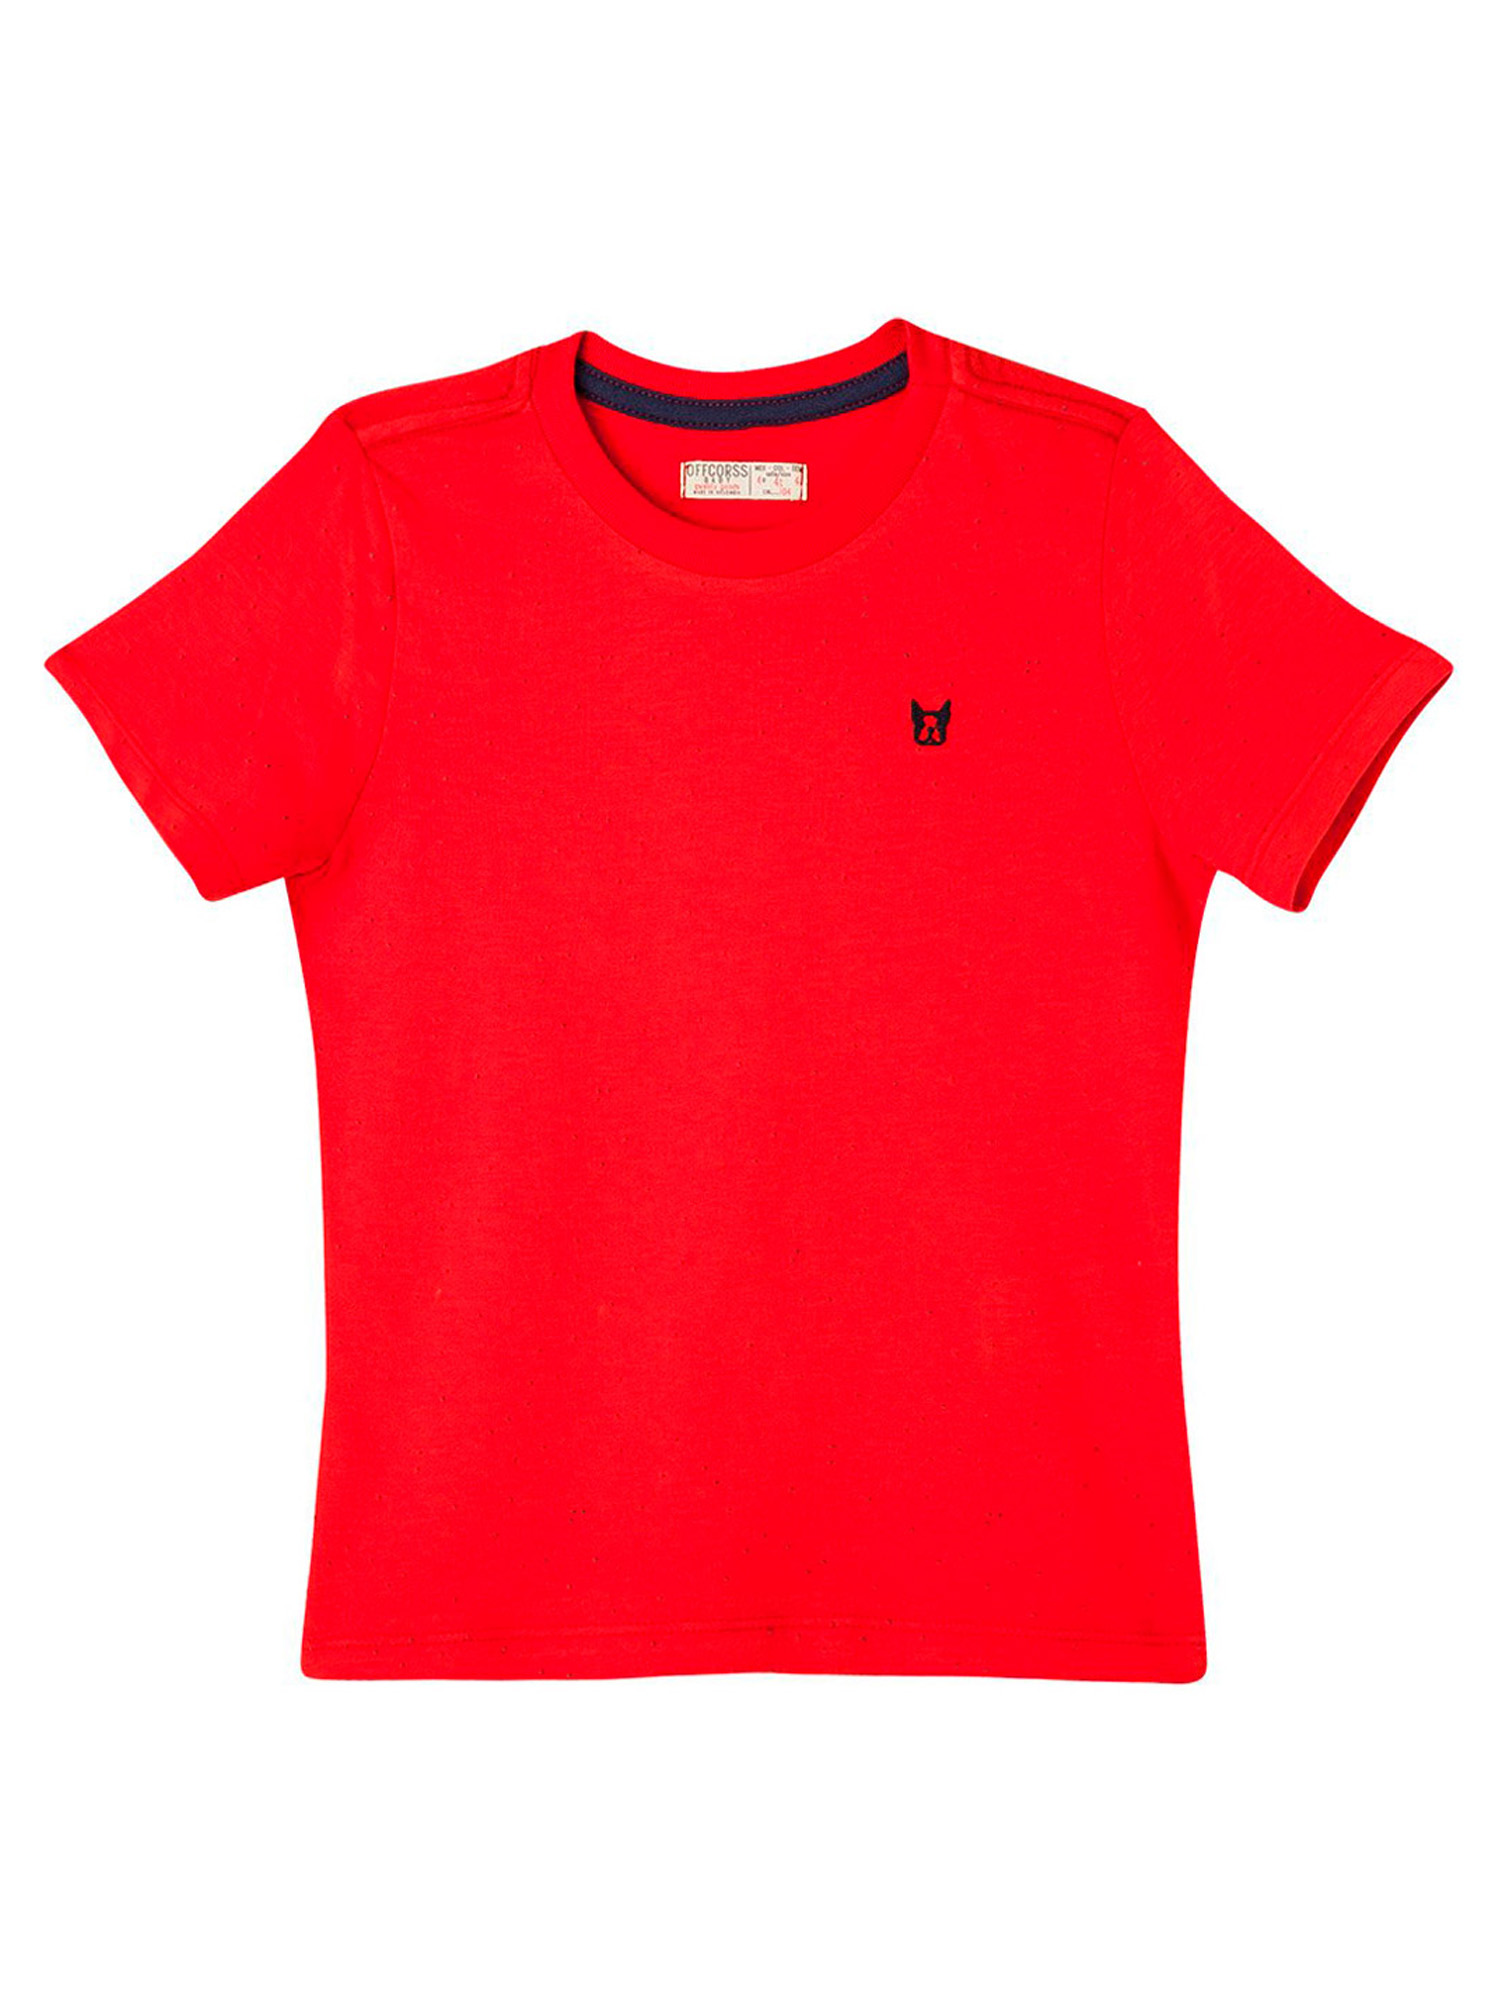 Wrangler Baby Toddler Boys Red T-Shirt Guitar Rock Star Quality Cotton 3T